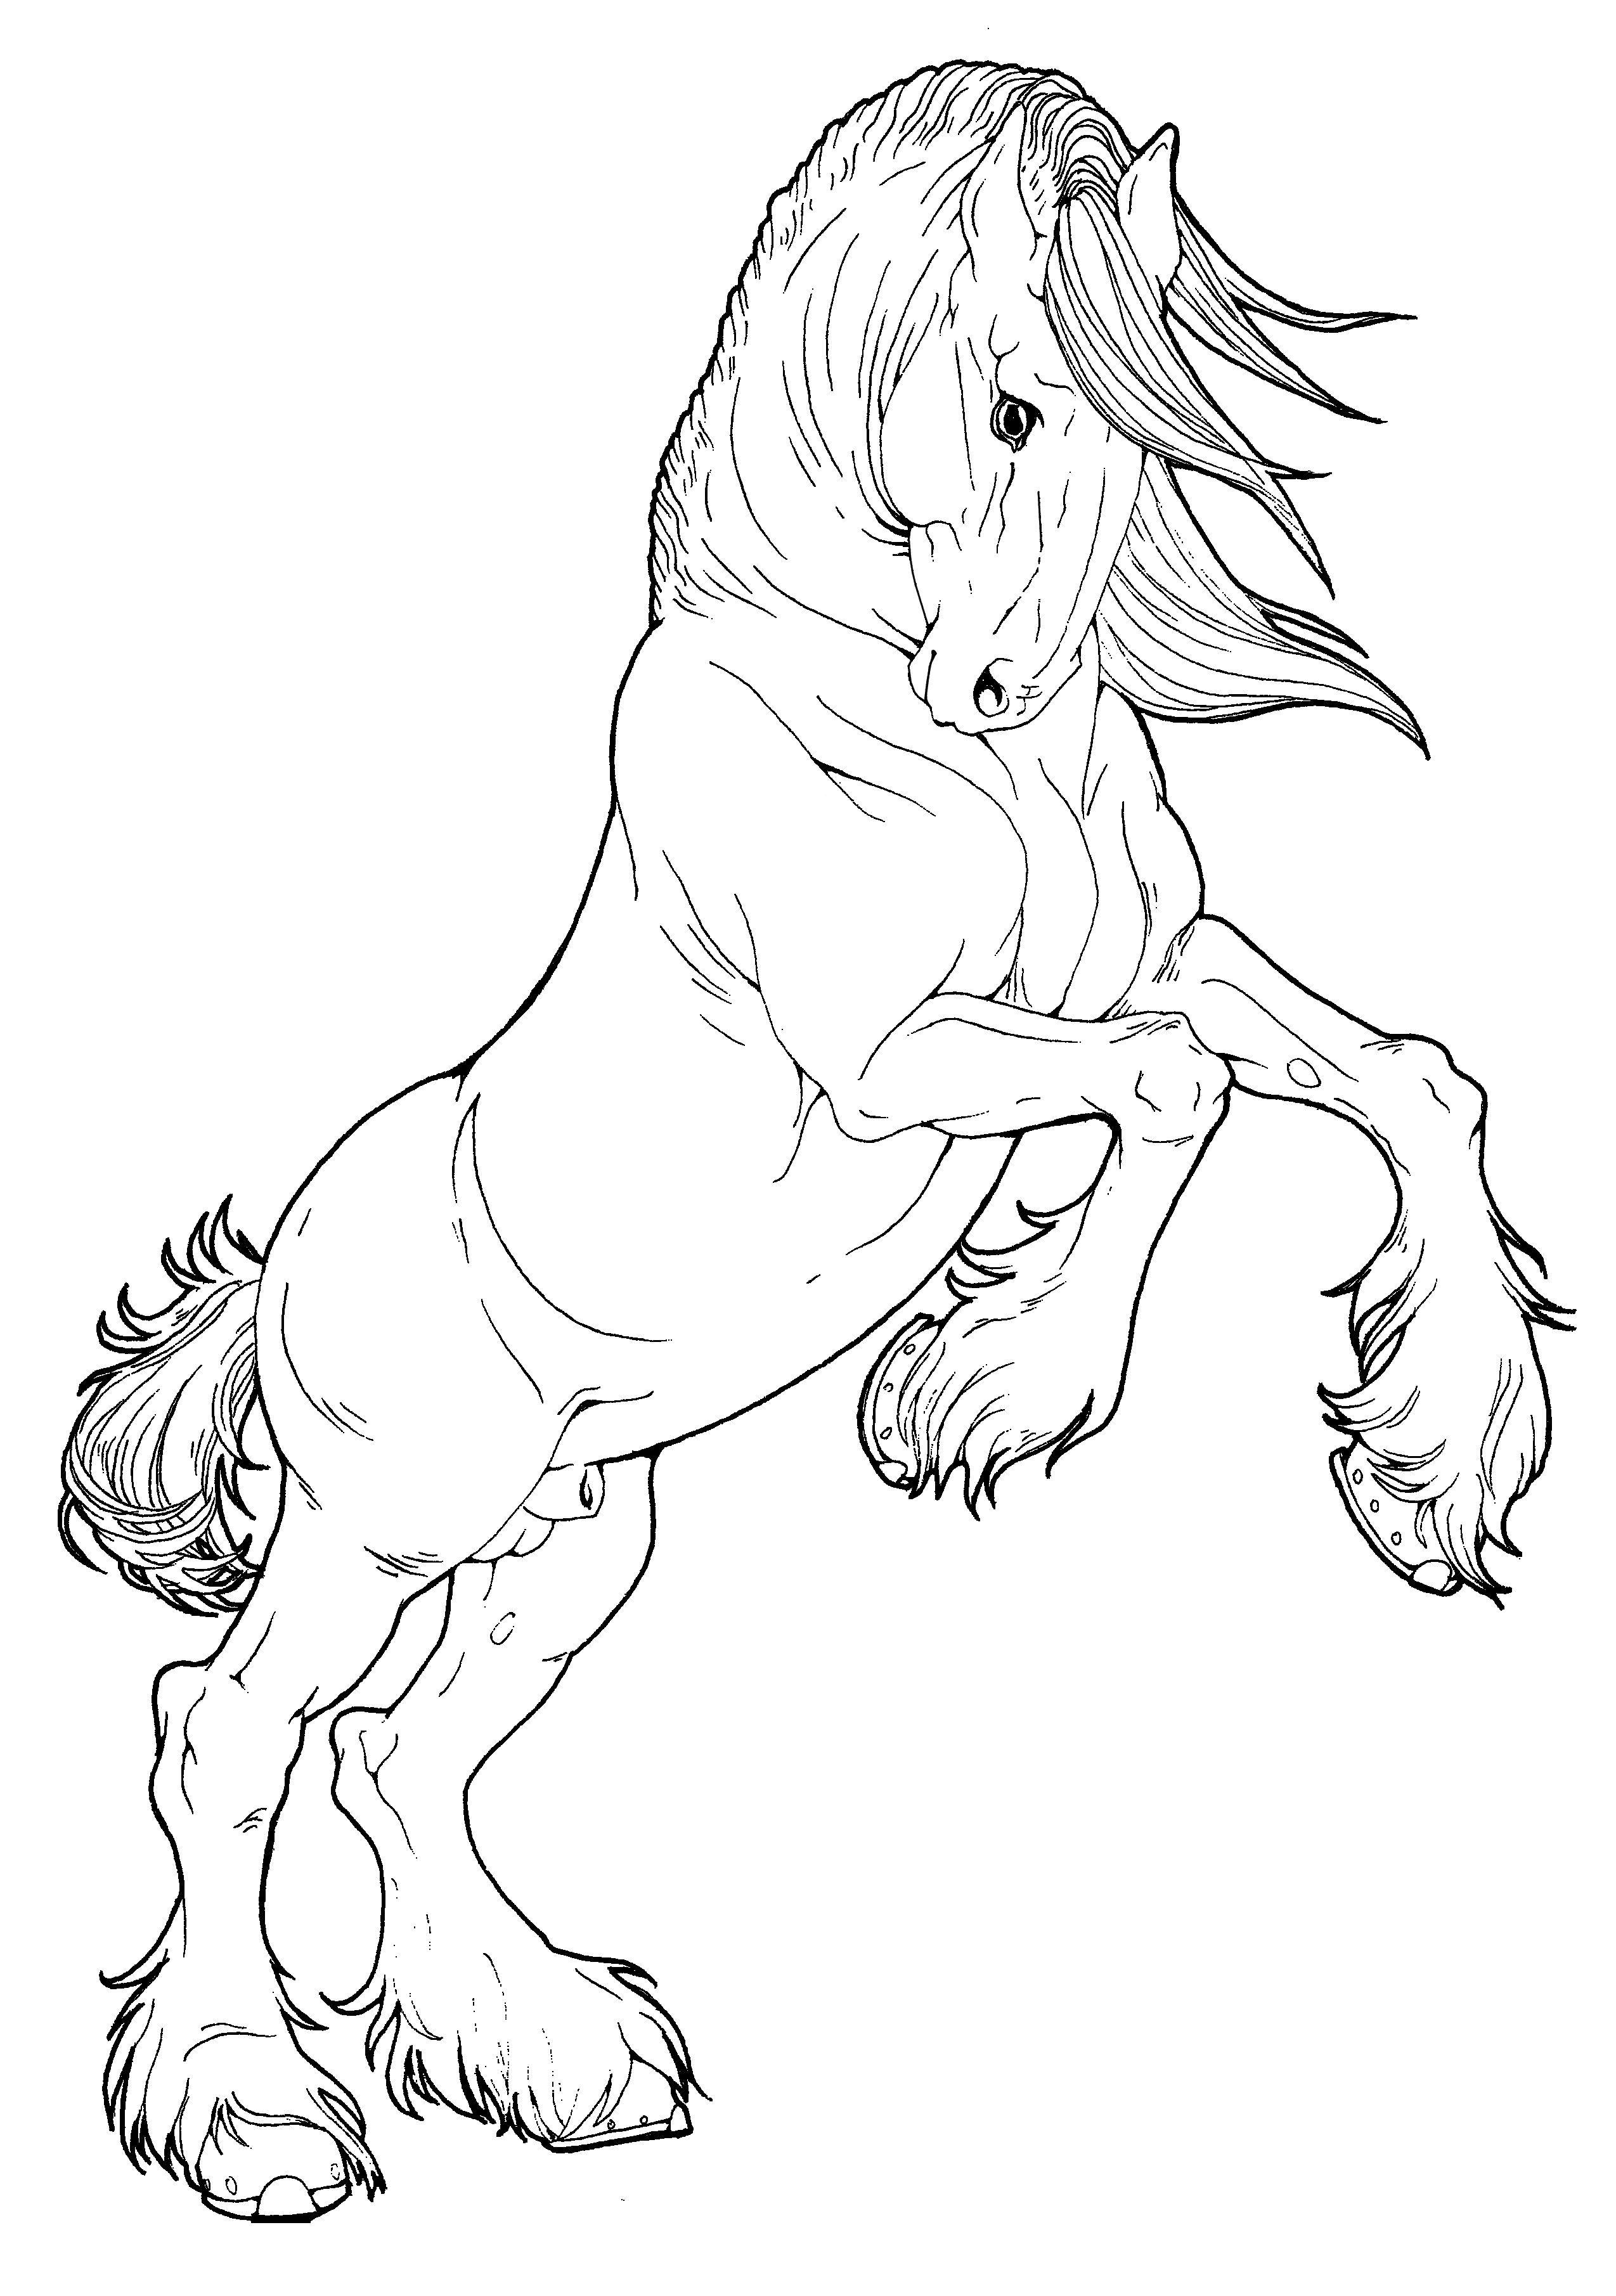 printable horse colouring pages cute horse coloring pages at getcoloringscom free colouring printable horse pages